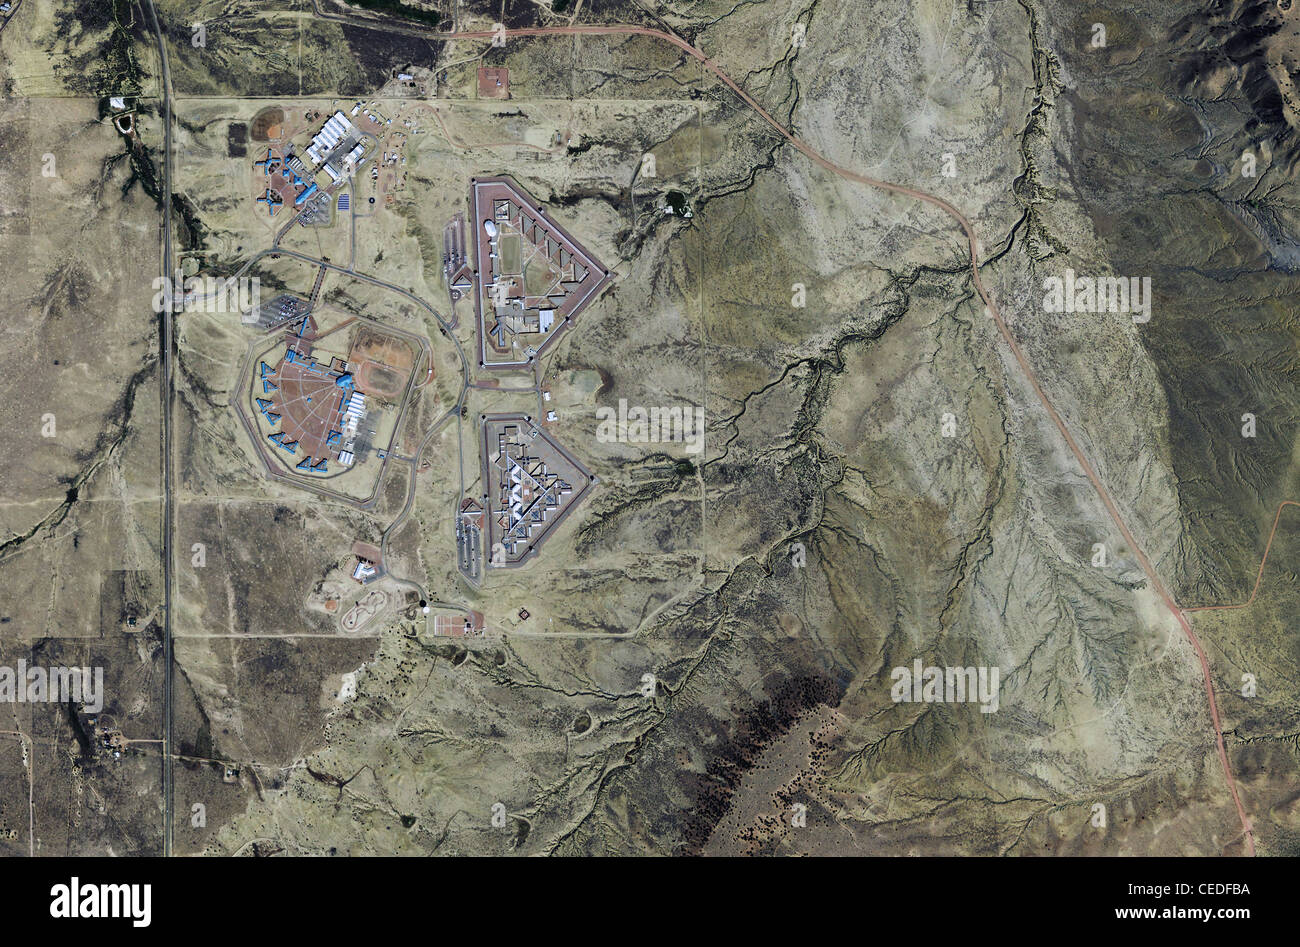 aerial photo map United States Penitentiary Administrative